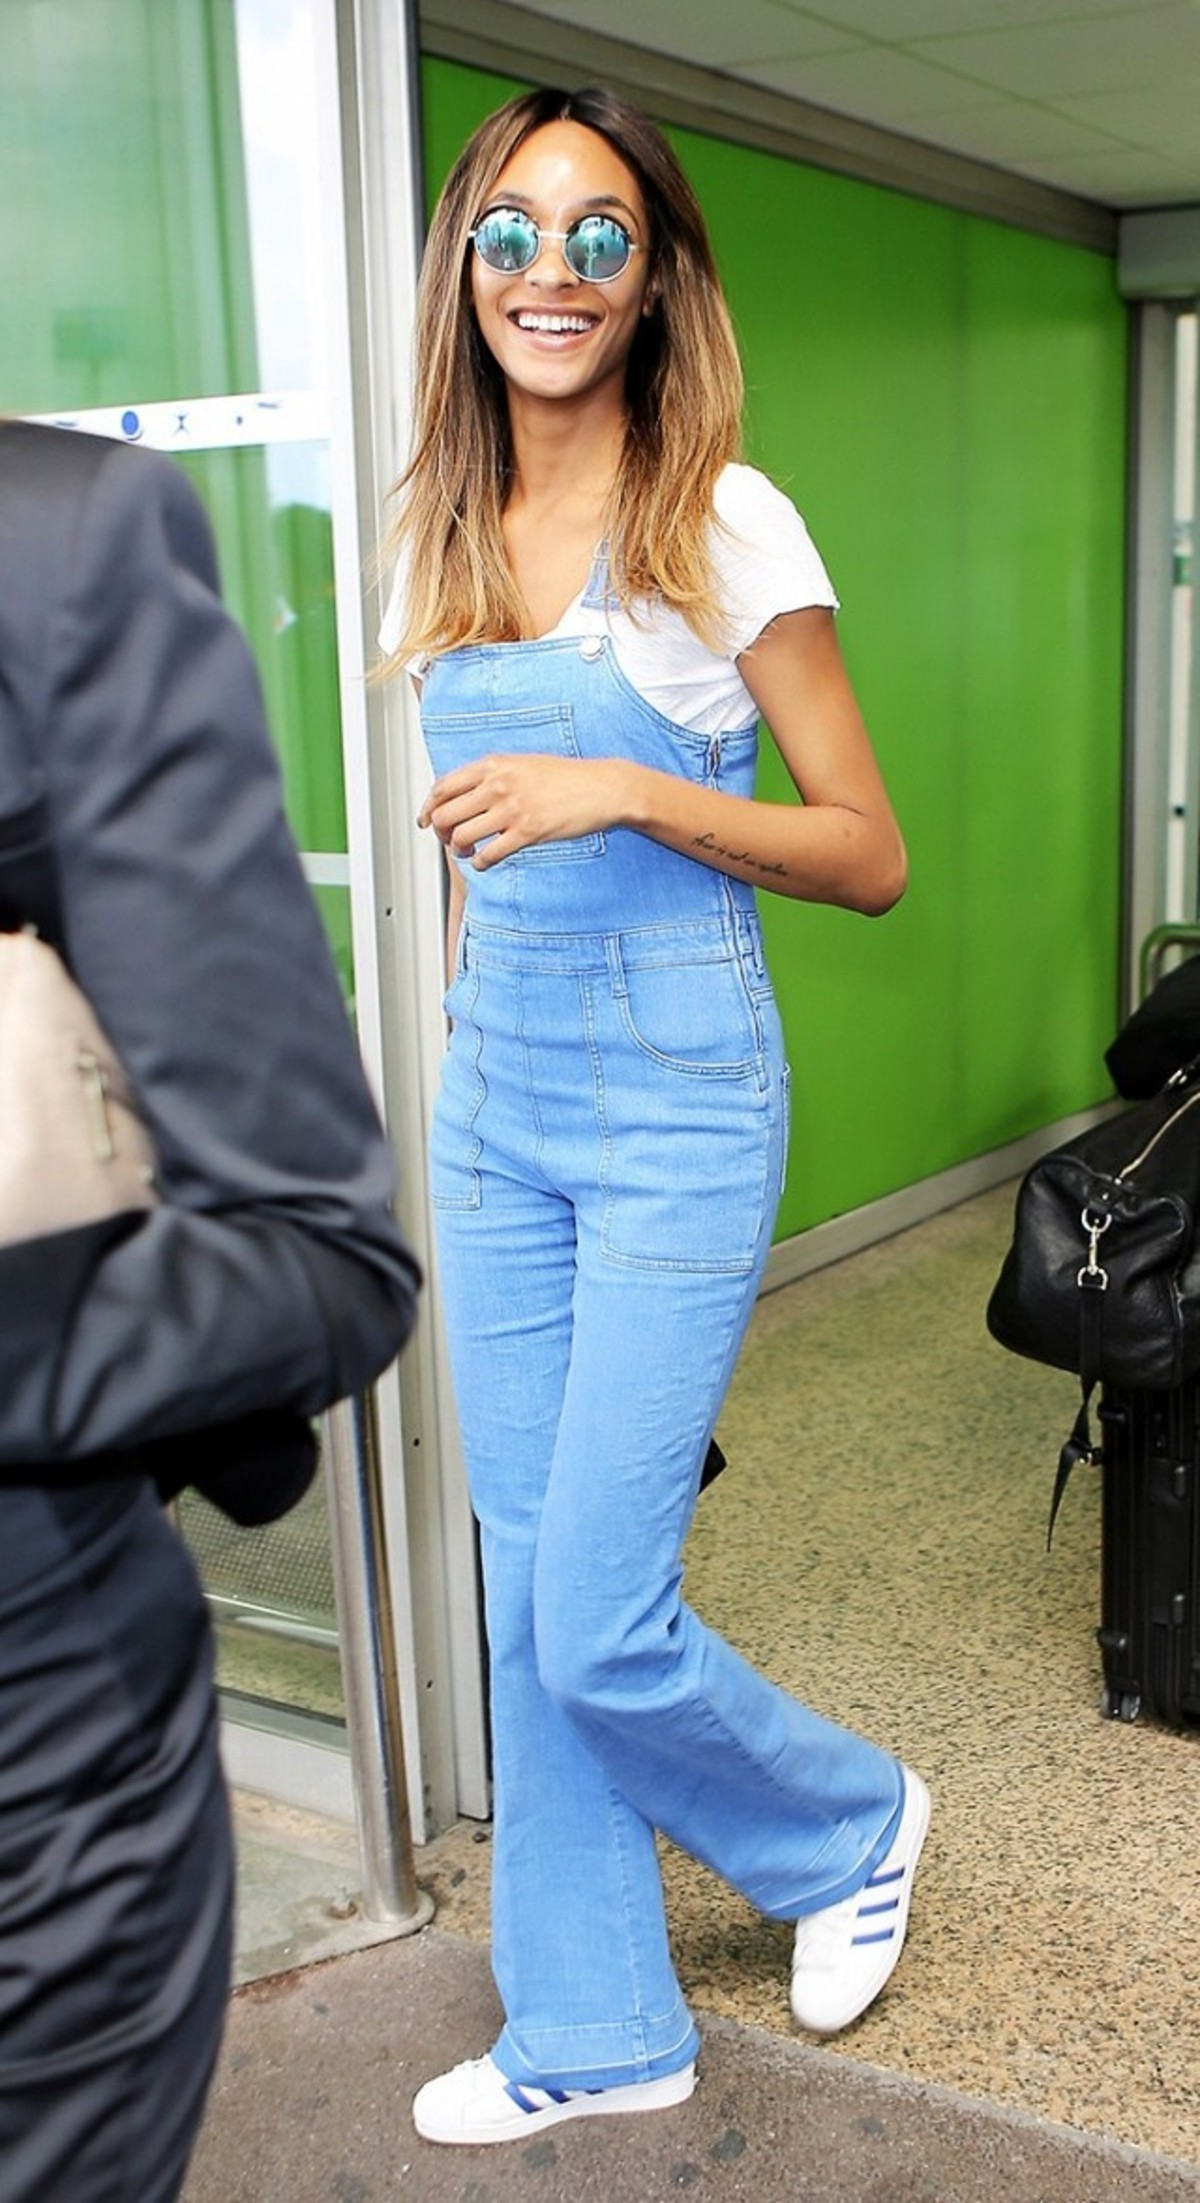 7-summer-airport-outfits-you-already-own-1808609-1466120029.640x0c